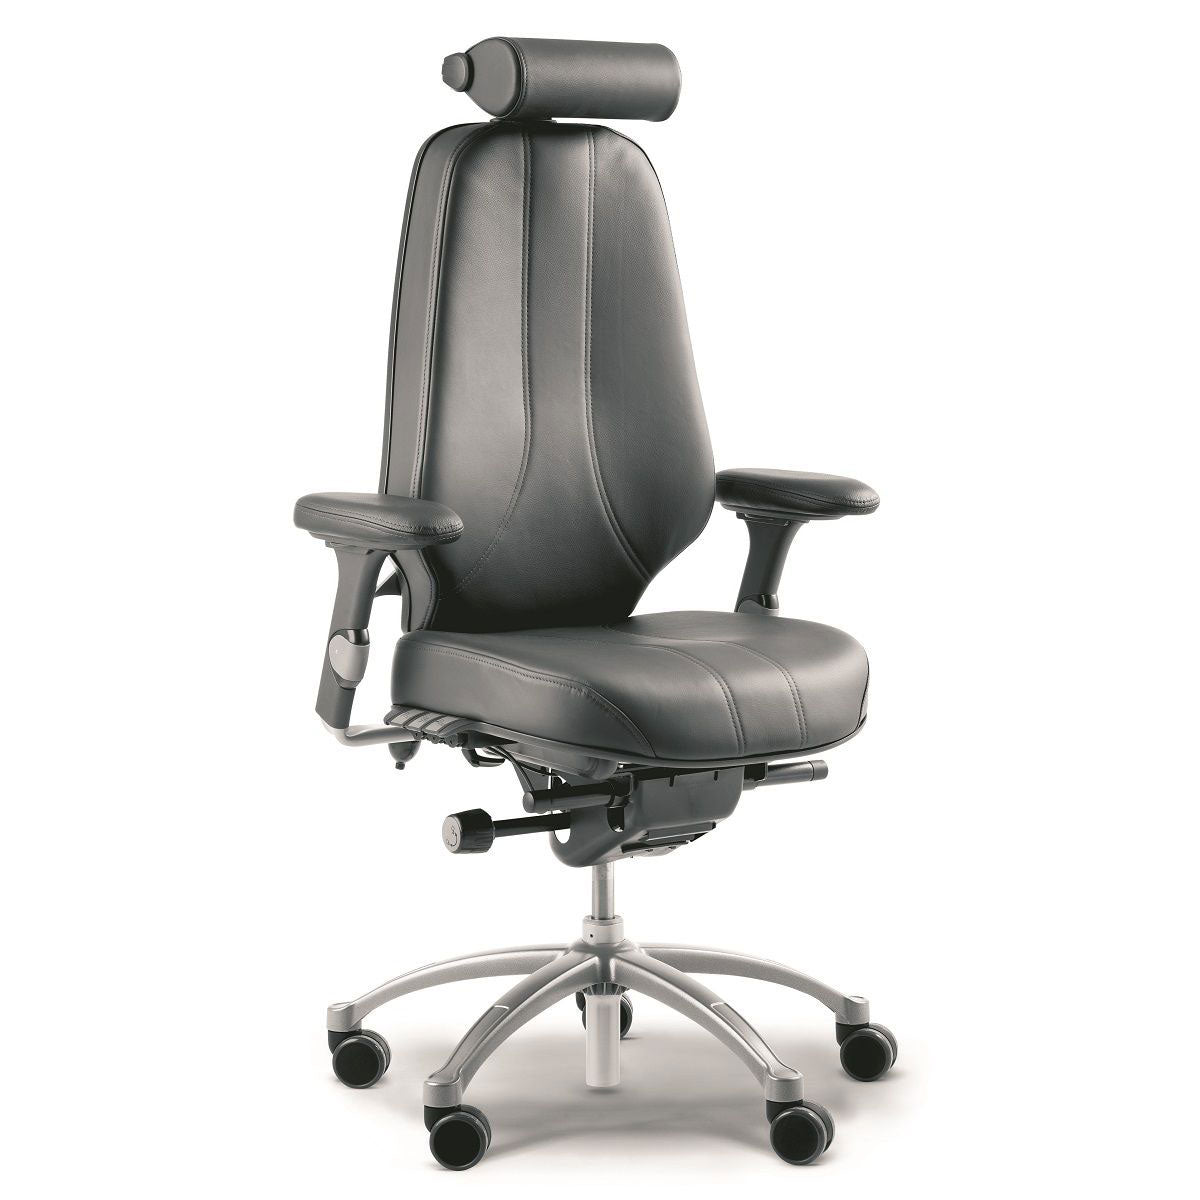 RH Logic 400 Elite Chair